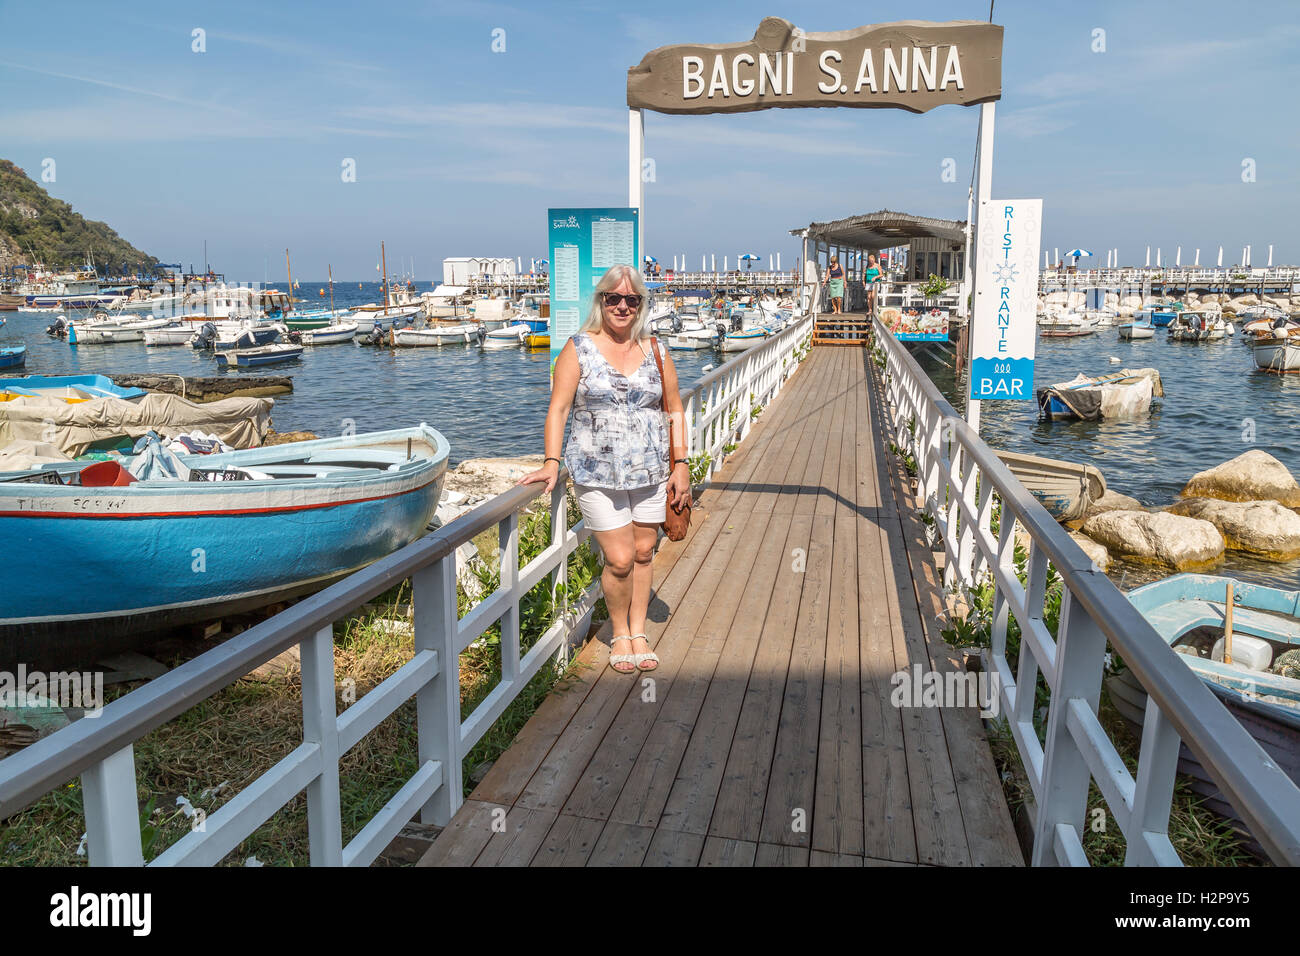 Sorrento italy sign stock photos sorrento italy sign stock images alamy - Bagni sant anna sorrento ...